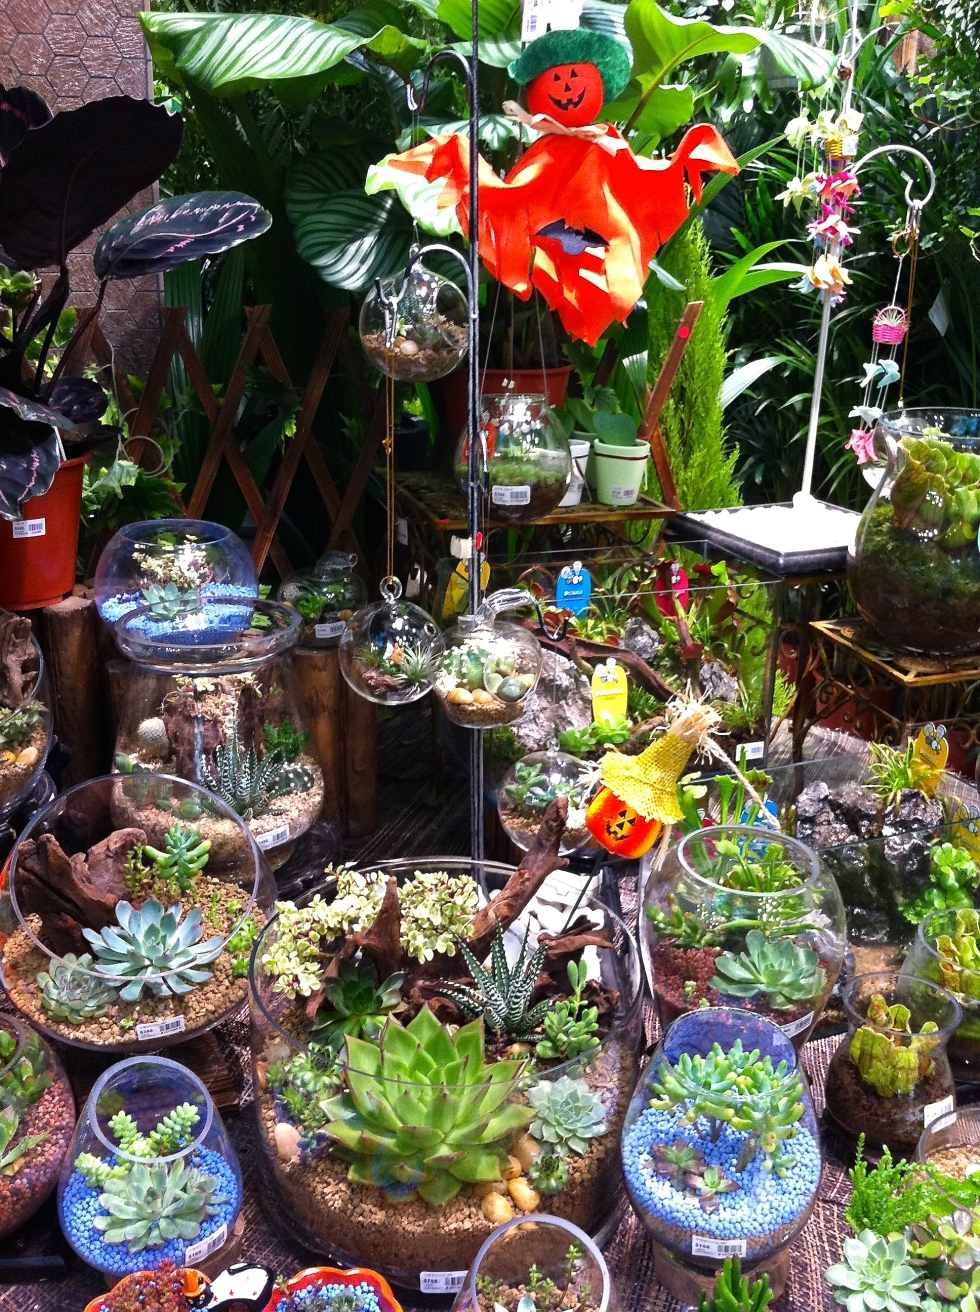 Halloween is becoming more and more popular in Hong Kong, although the relationship to succulent plants isn't clear!